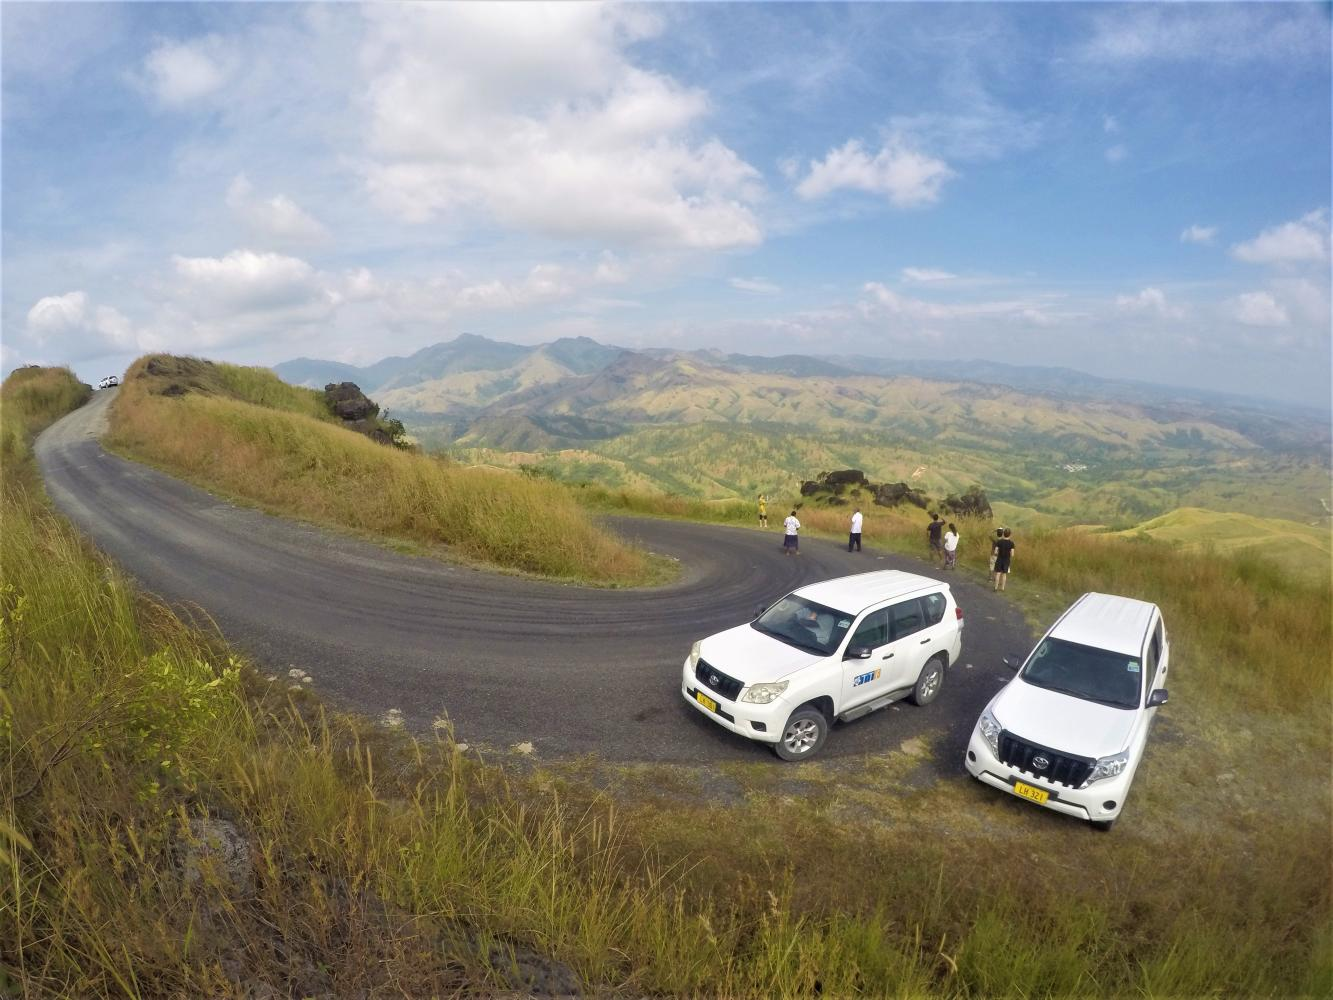 Drive high into the Nausori Highlands Hills, enjoy stunning views with a visit to the local village and school in Fiji